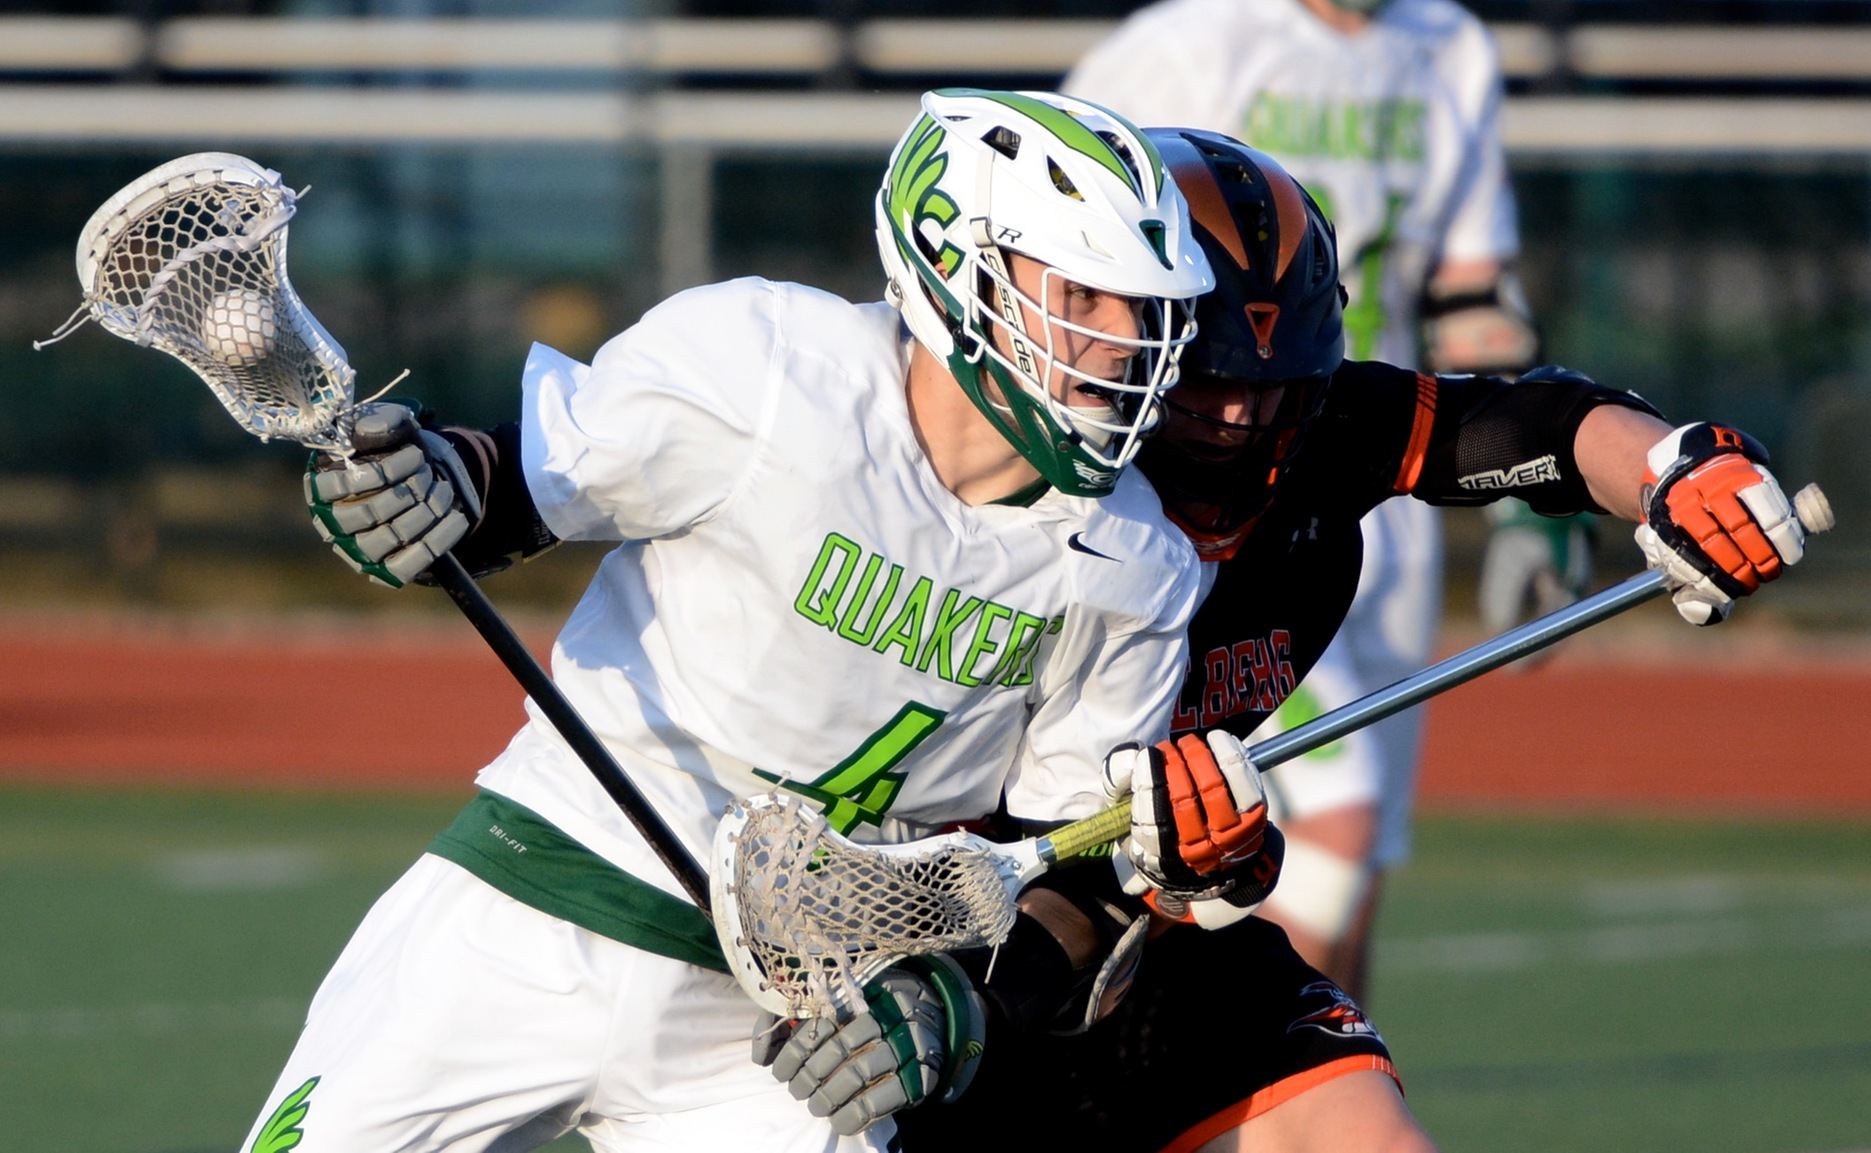 Lang's Two Goals Not Enough in Men's Lacrosse's 28-4 Loss to Capital